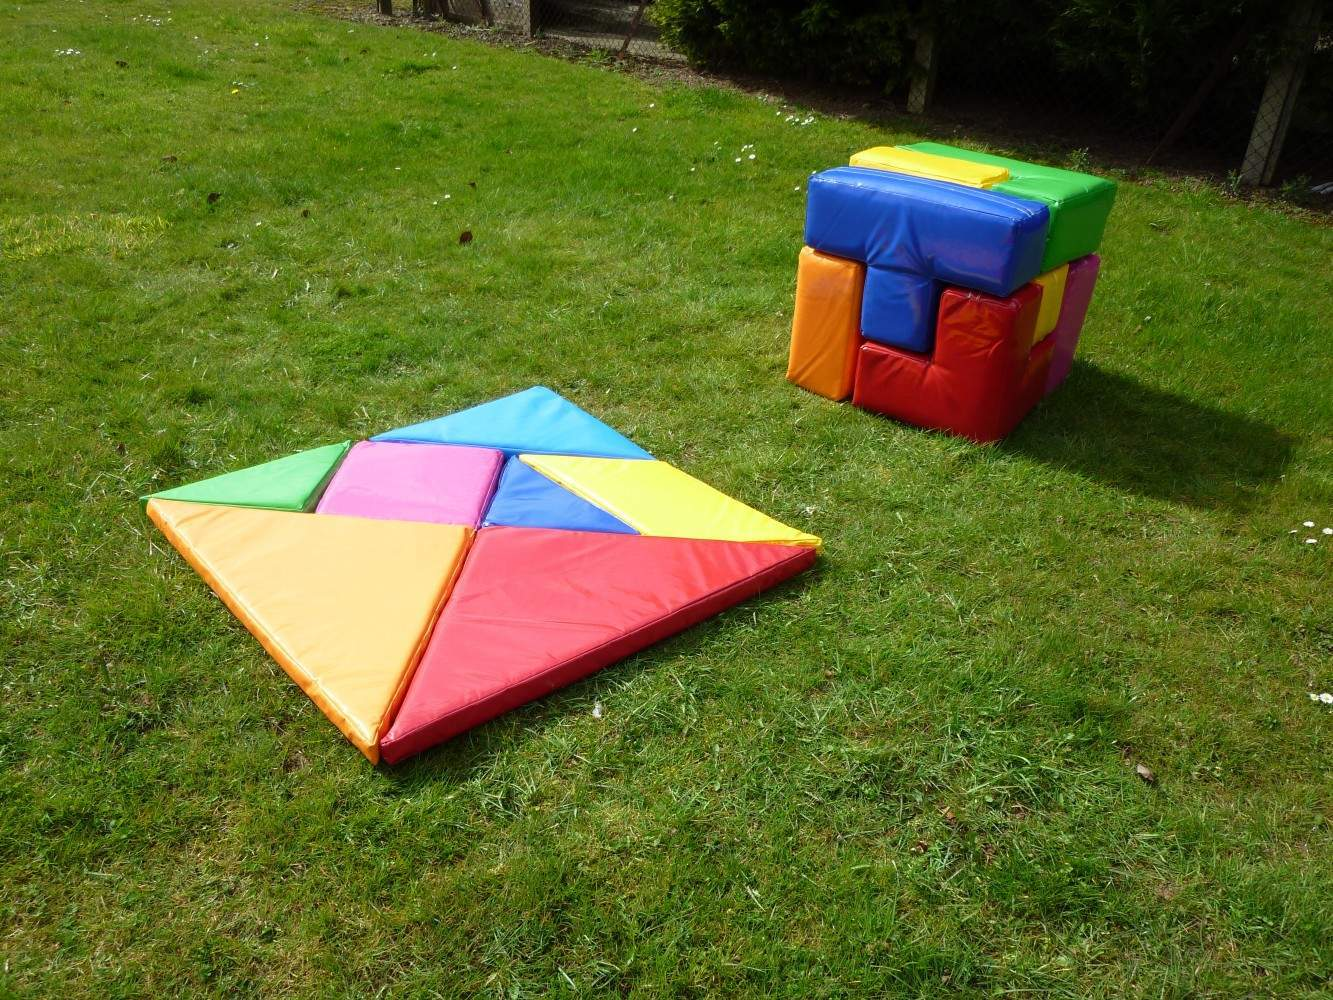 Giant Tangram Puzzle - Team Building Game And Ice Breaker